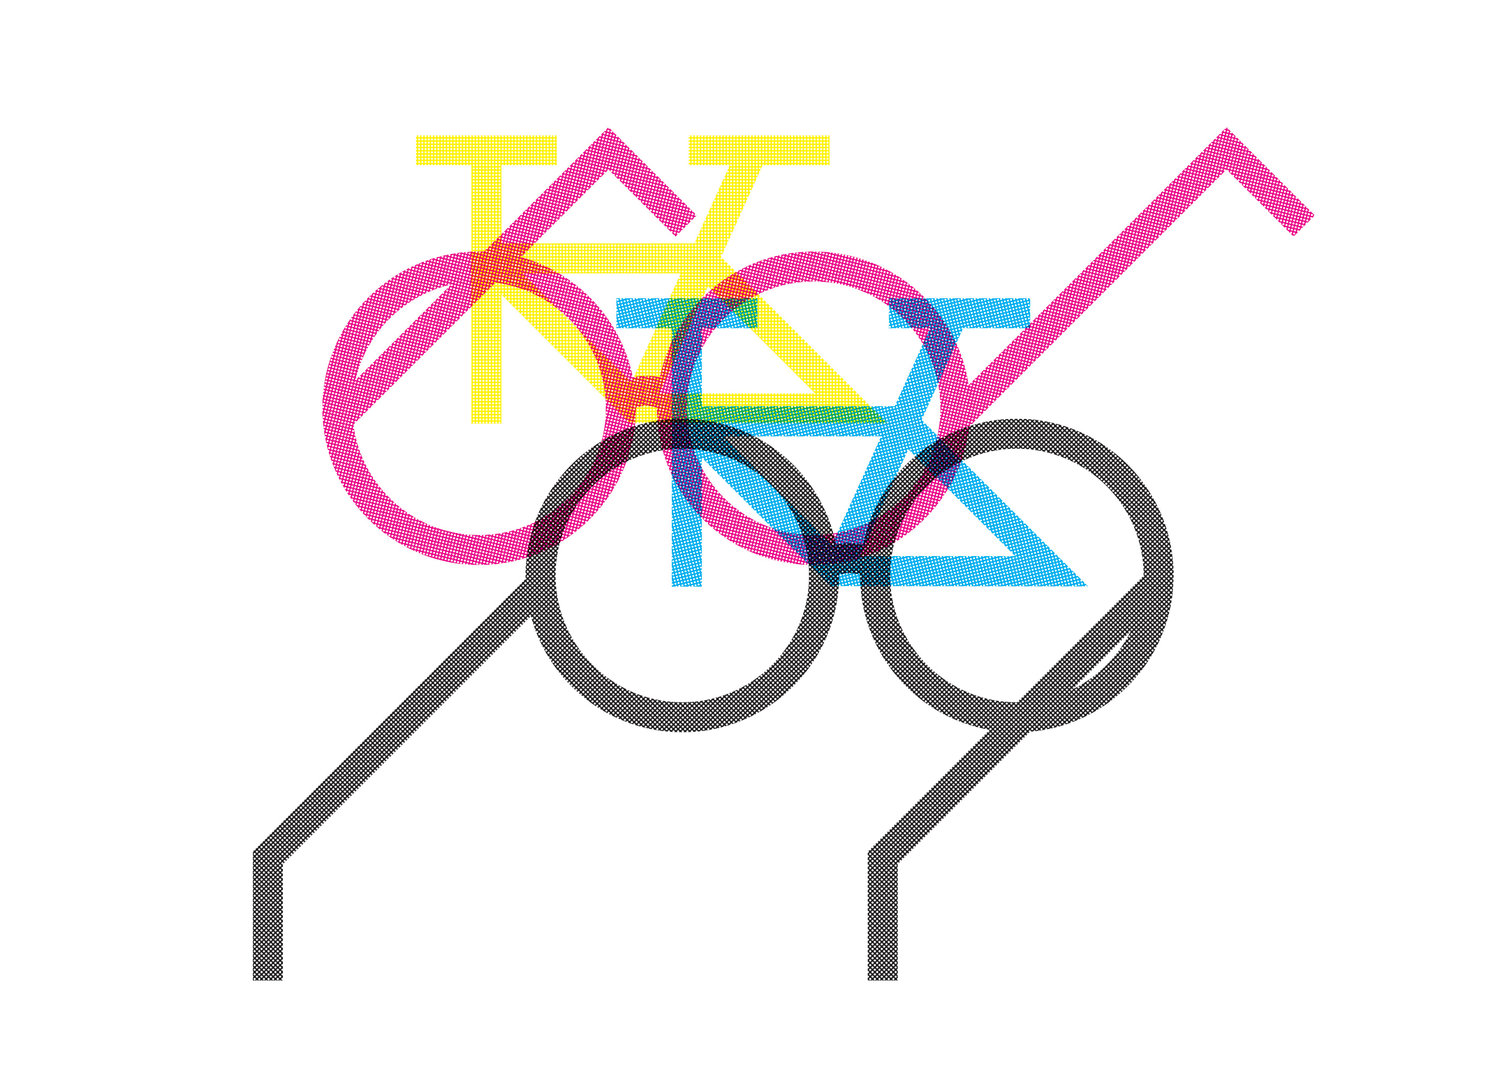 illustration_andre_levy_zhion_vector_conceptual_minimal_sports_reading_press_retro_pictogram_glasses_bicycle.jpg